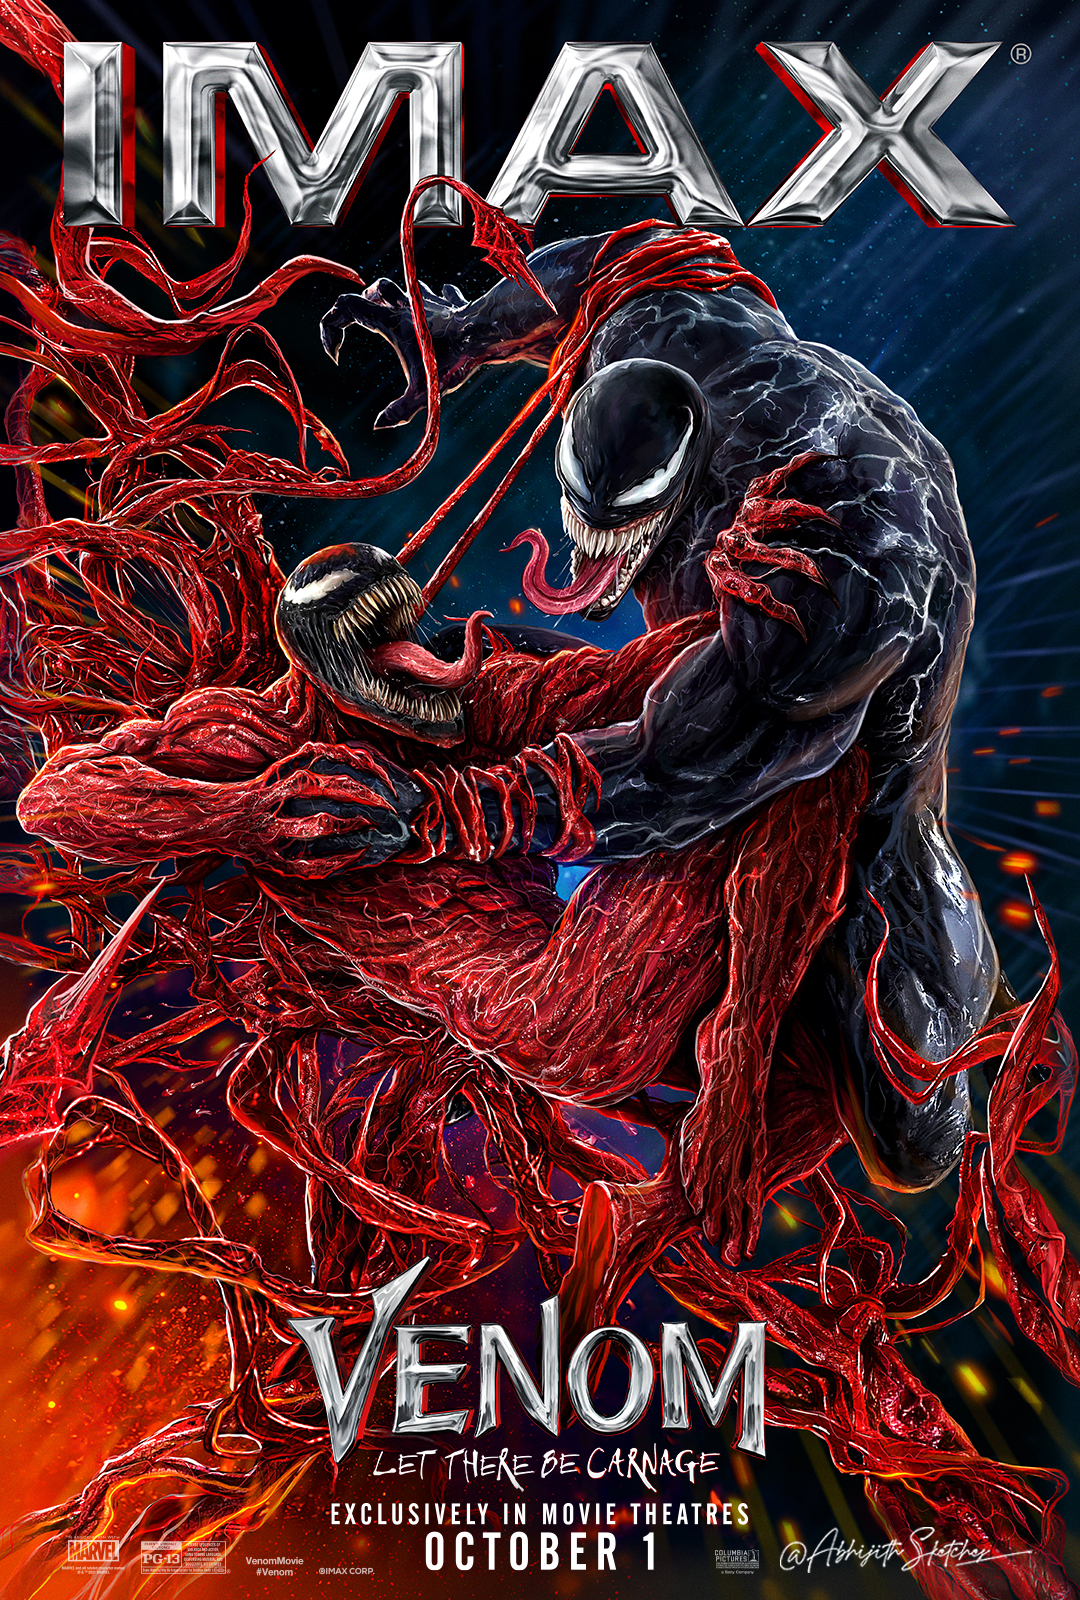 Movie poster image for VENOM: LET THERE BE CARNAGE in IMAX